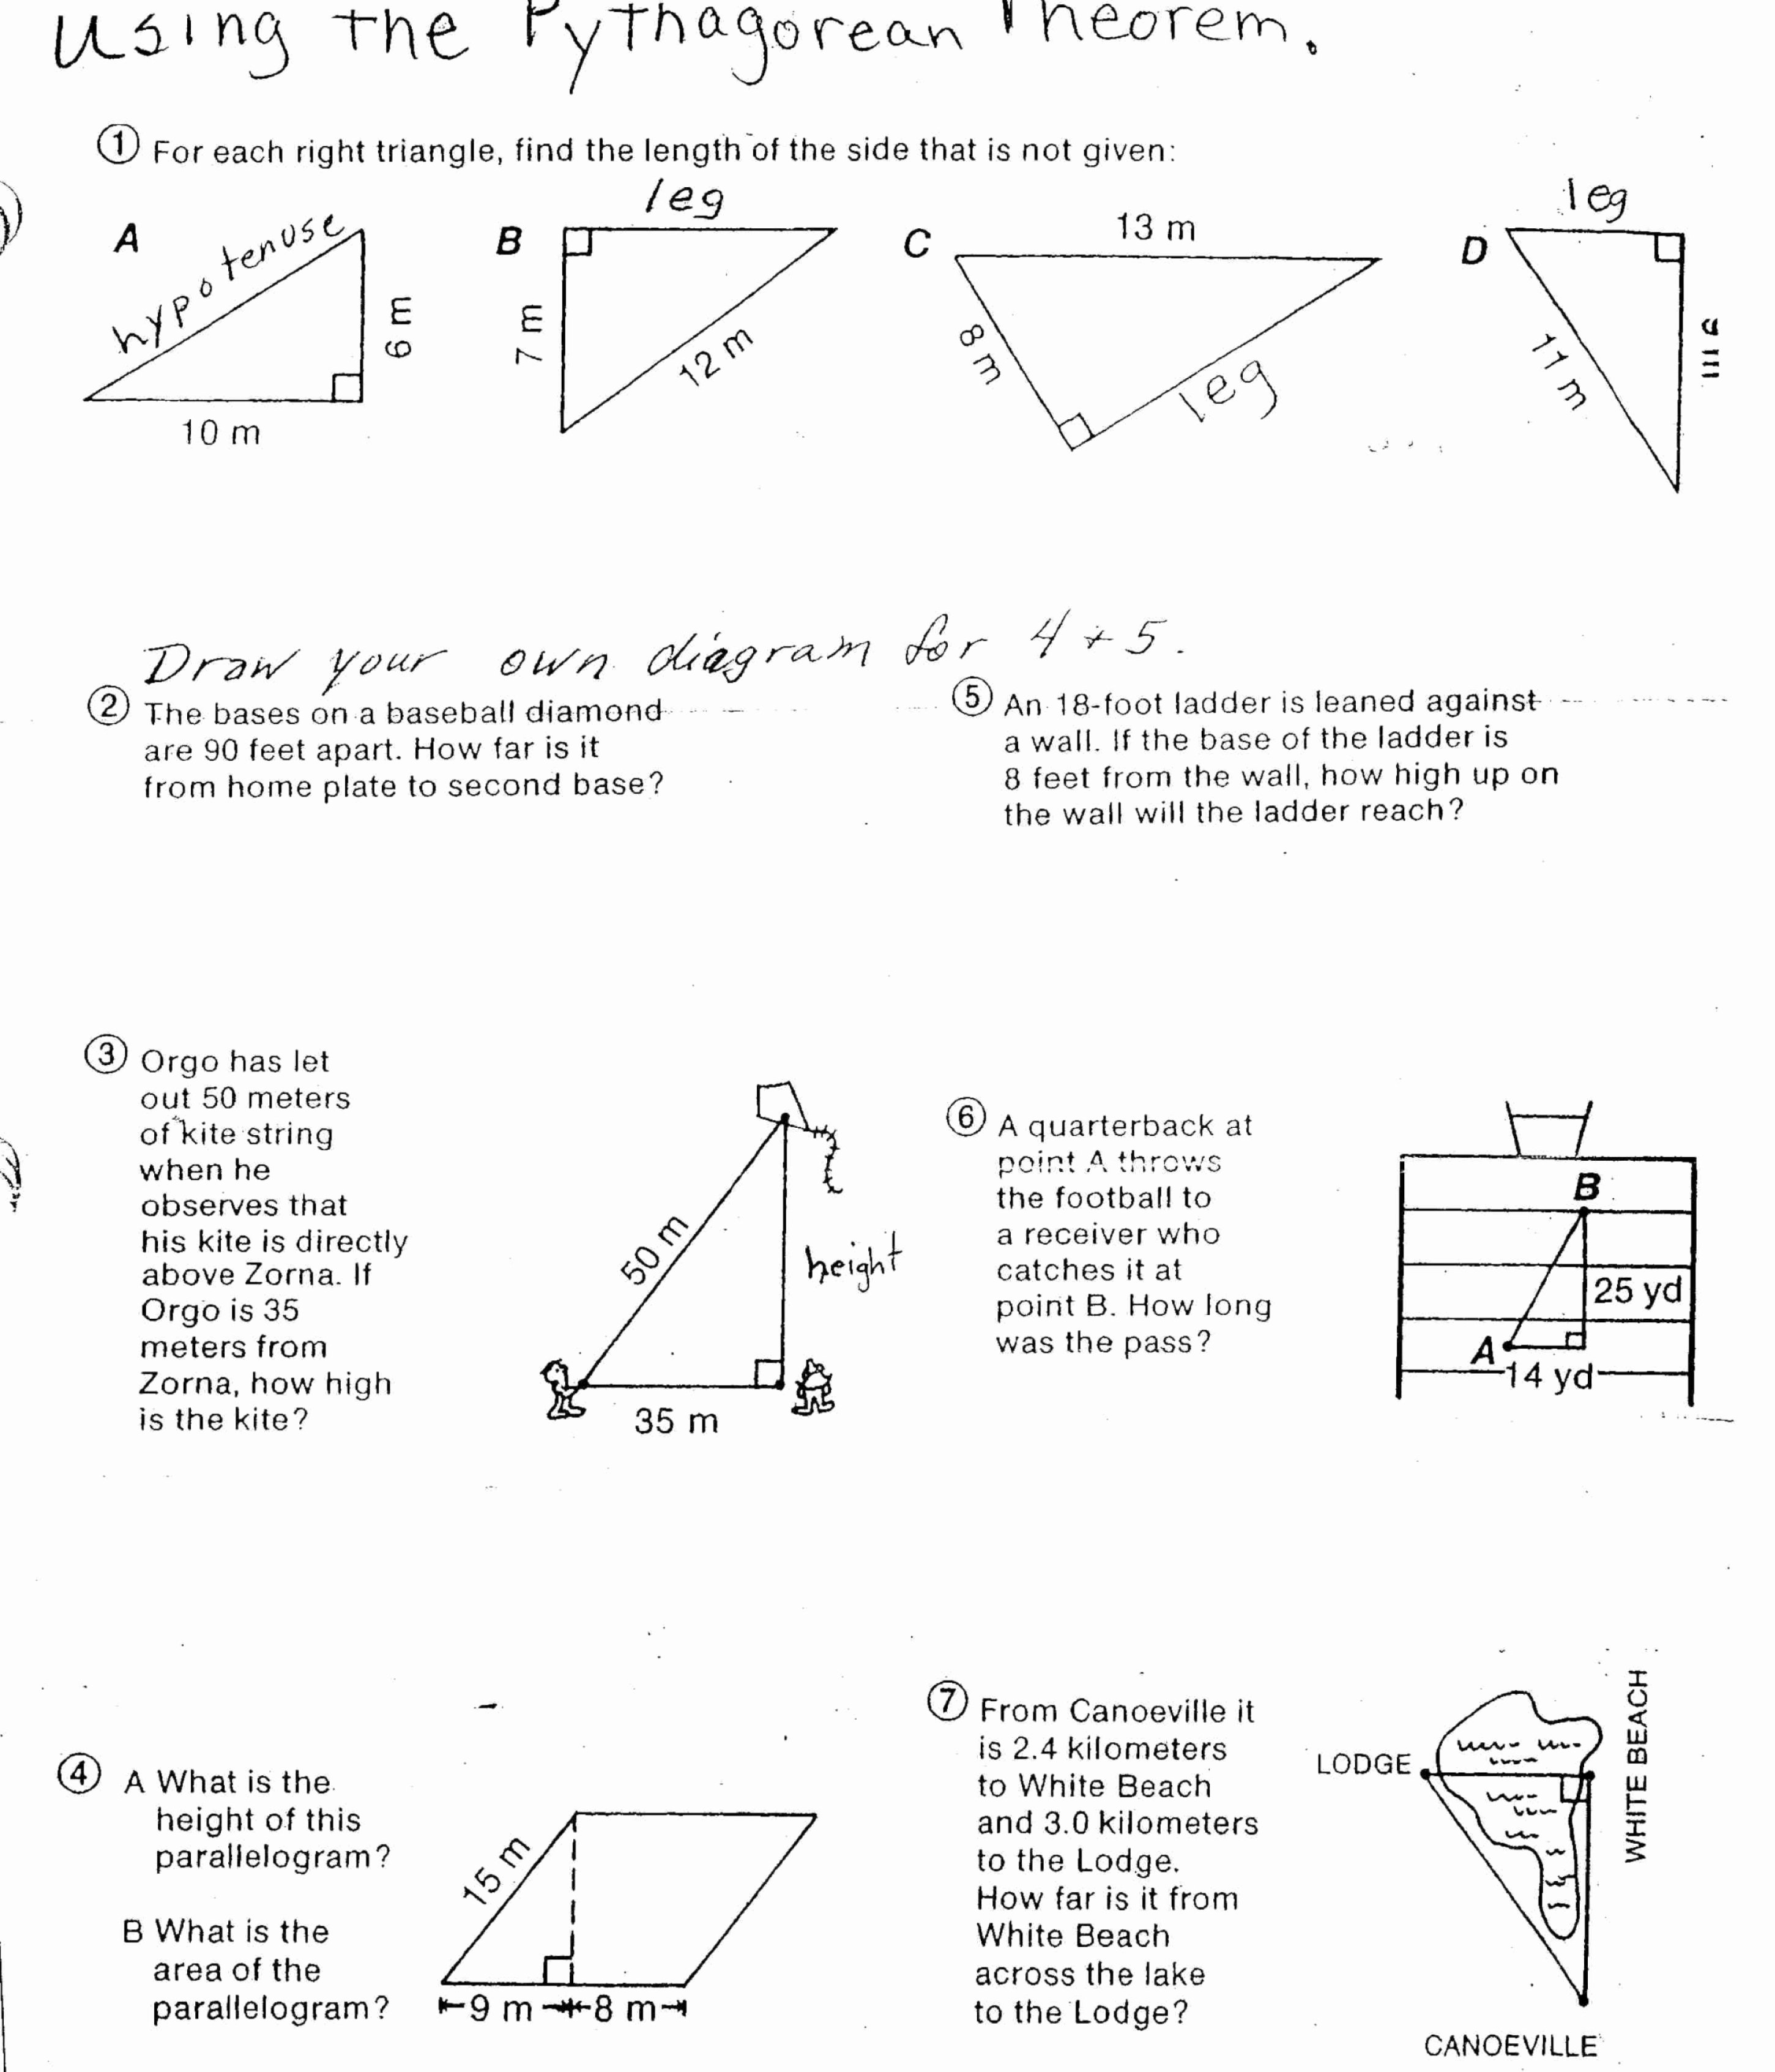 Vector Worksheet Physics Answers Lovely Resultant Vector Worksheet with Answers